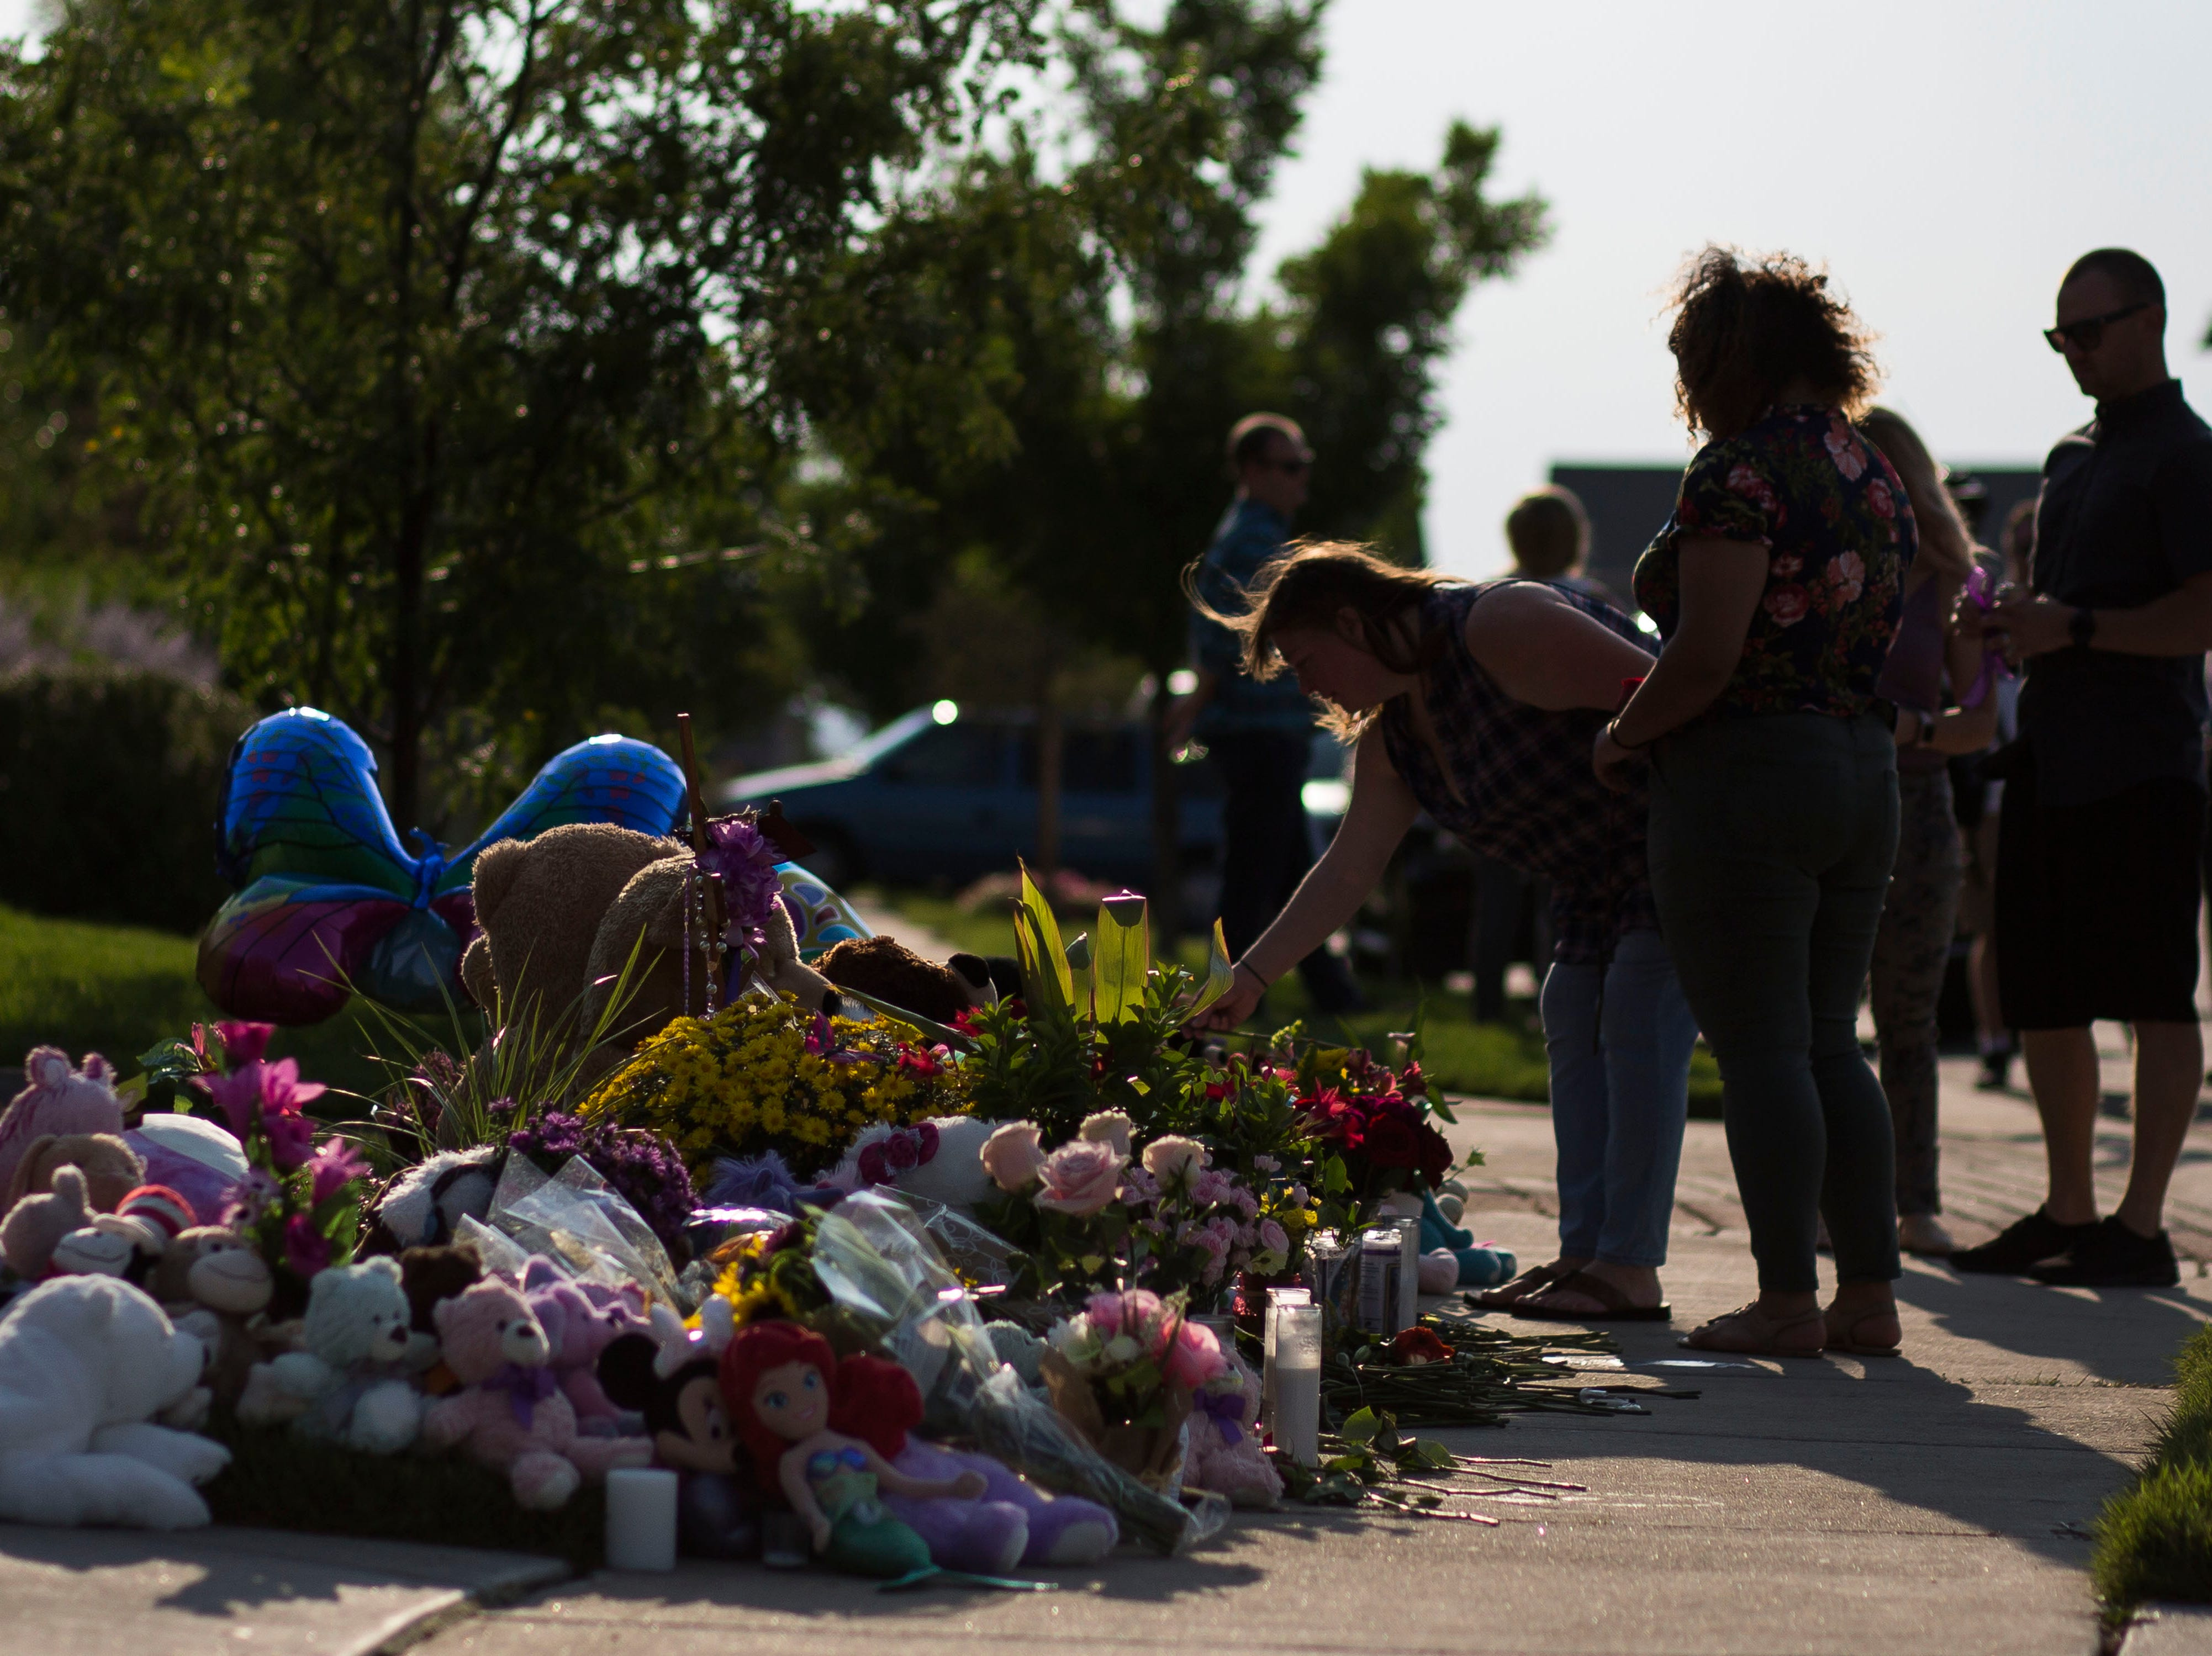 Frederick resident Jeniffer Seiler places a flower on the memorial for the slain Shanann Watts and her two daughters, Bella, 4, and Celeste, 3, in front of the Watts' family home on Friday, Aug. 17, 2018, in Frederick, Colo.